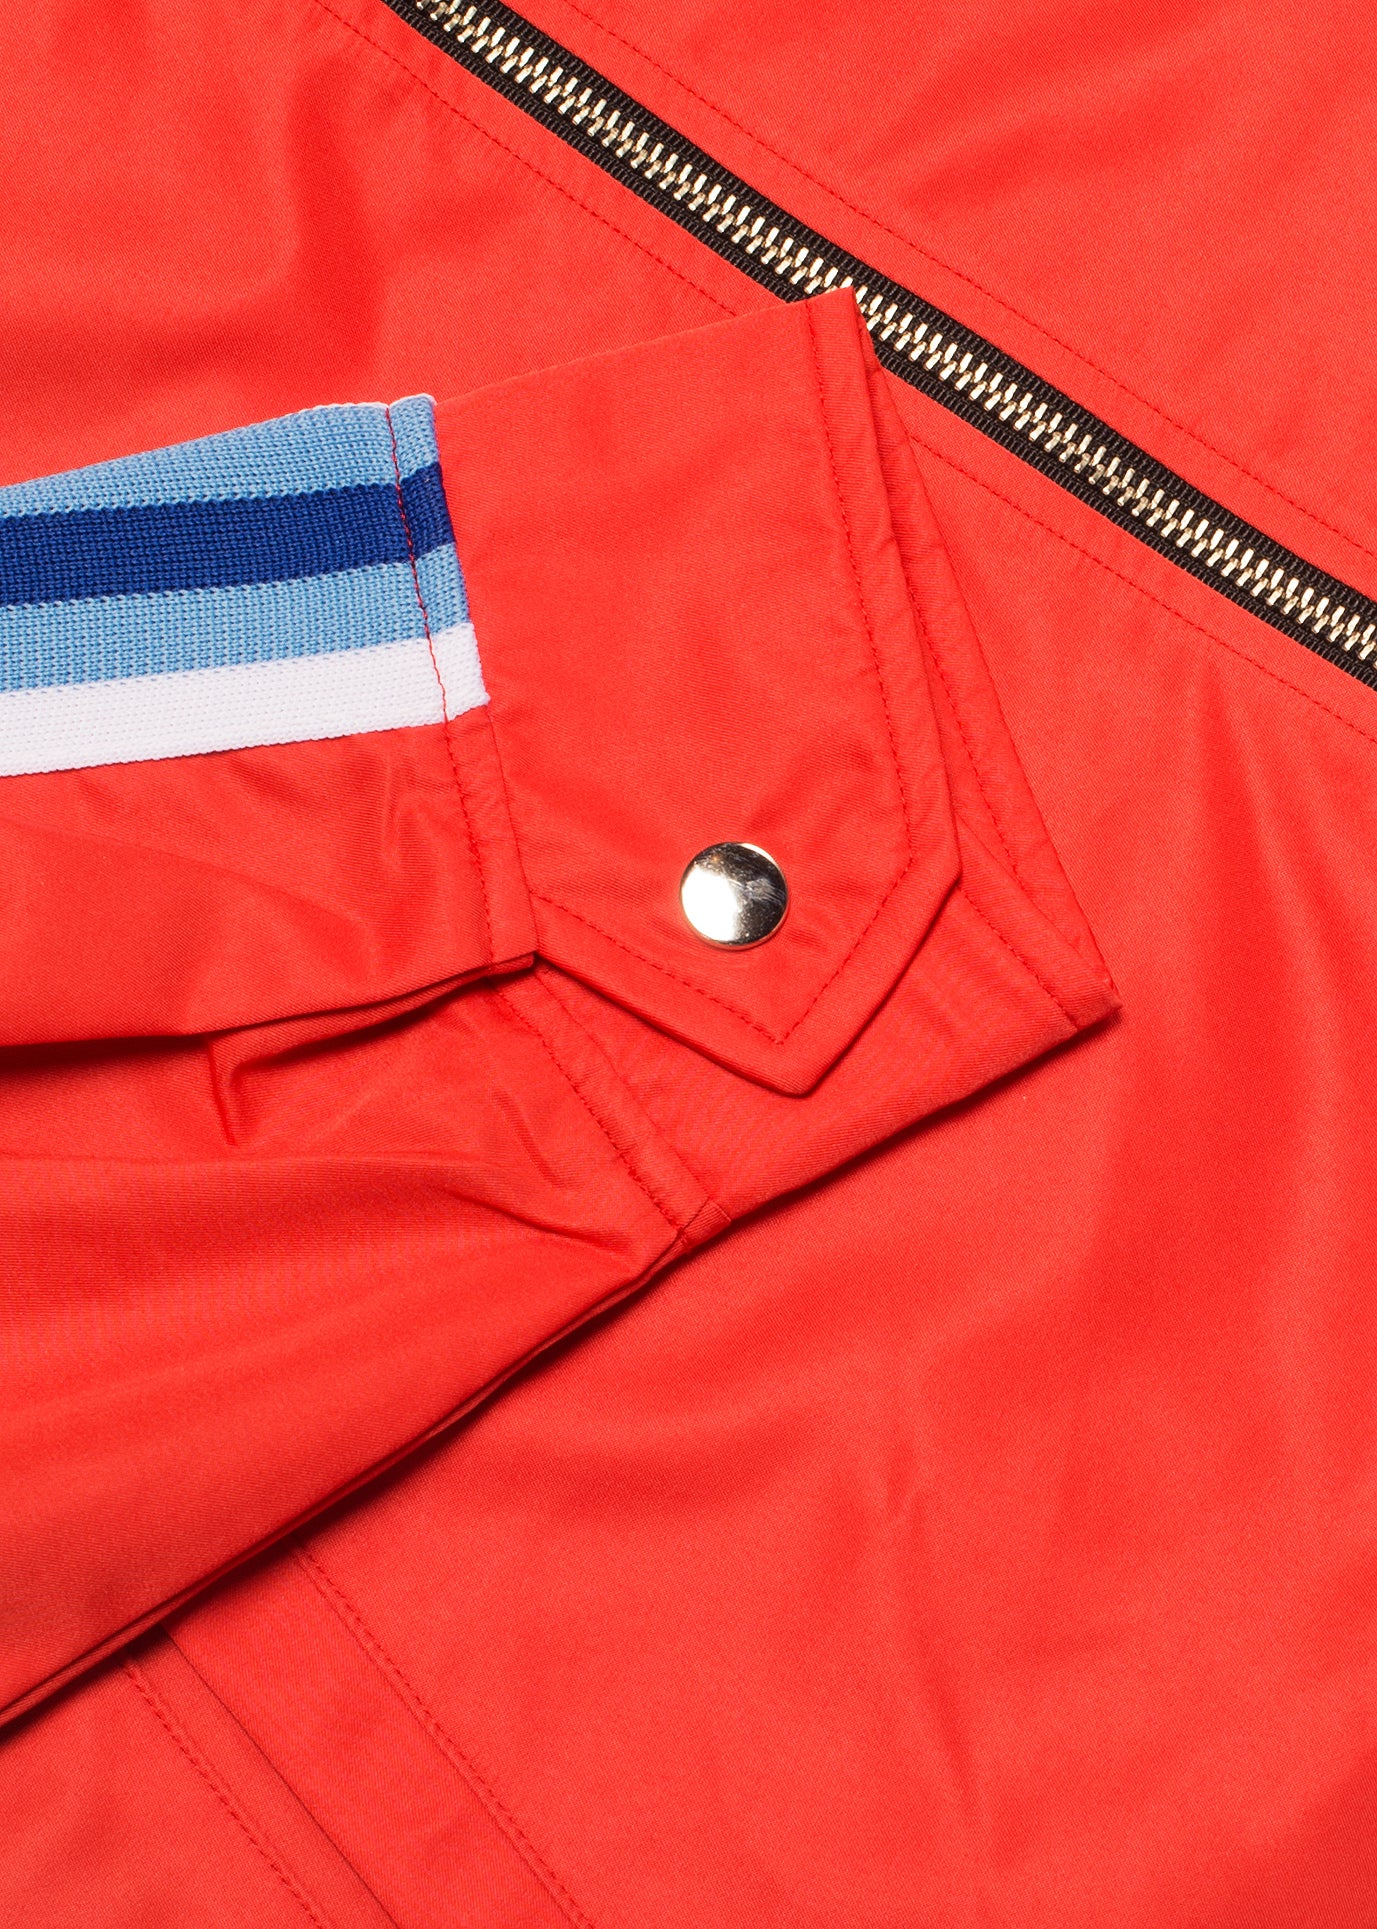 Rave Jacket - Red